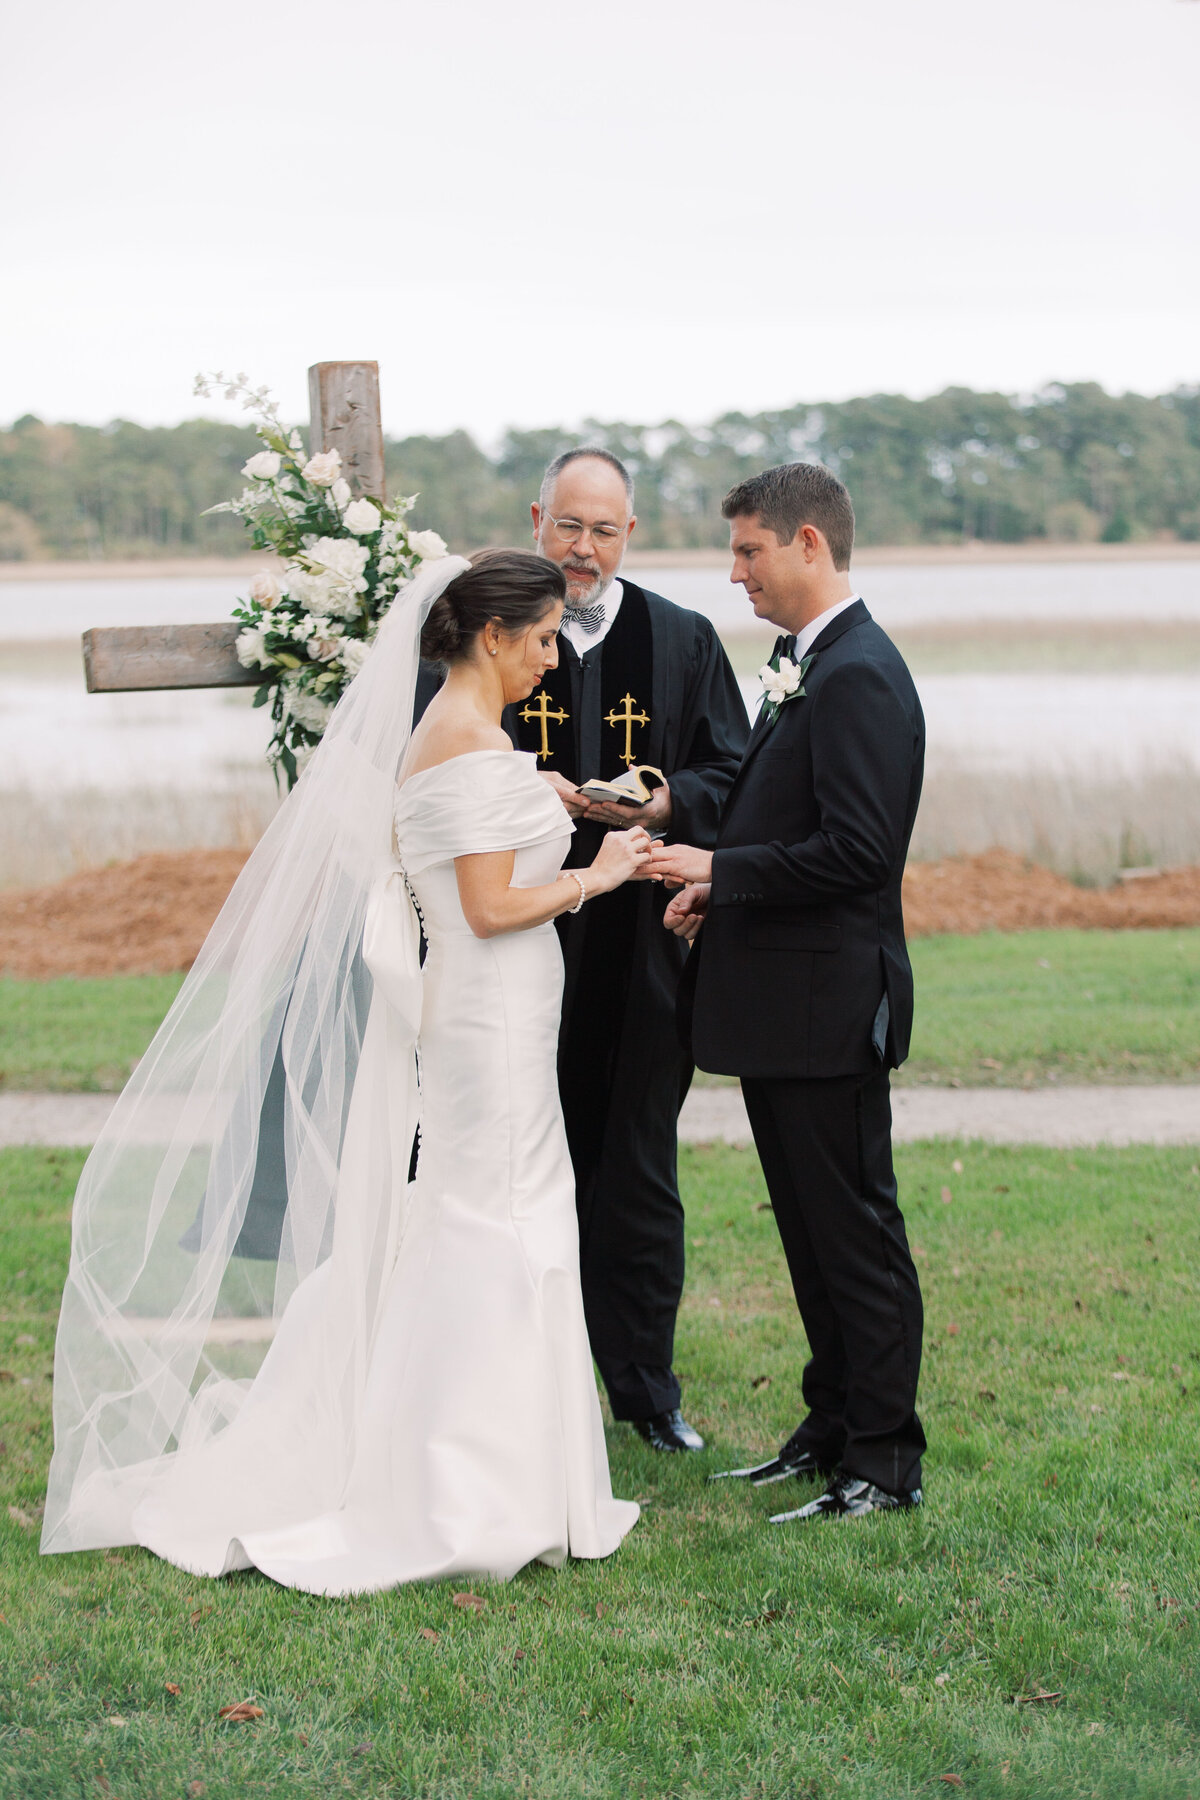 Powell_Oldfield_River_Club_Bluffton_South_Carolina_Beaufort_Savannah_Wedding_Jacksonville_Florida_Devon_Donnahoo_Photography_0624